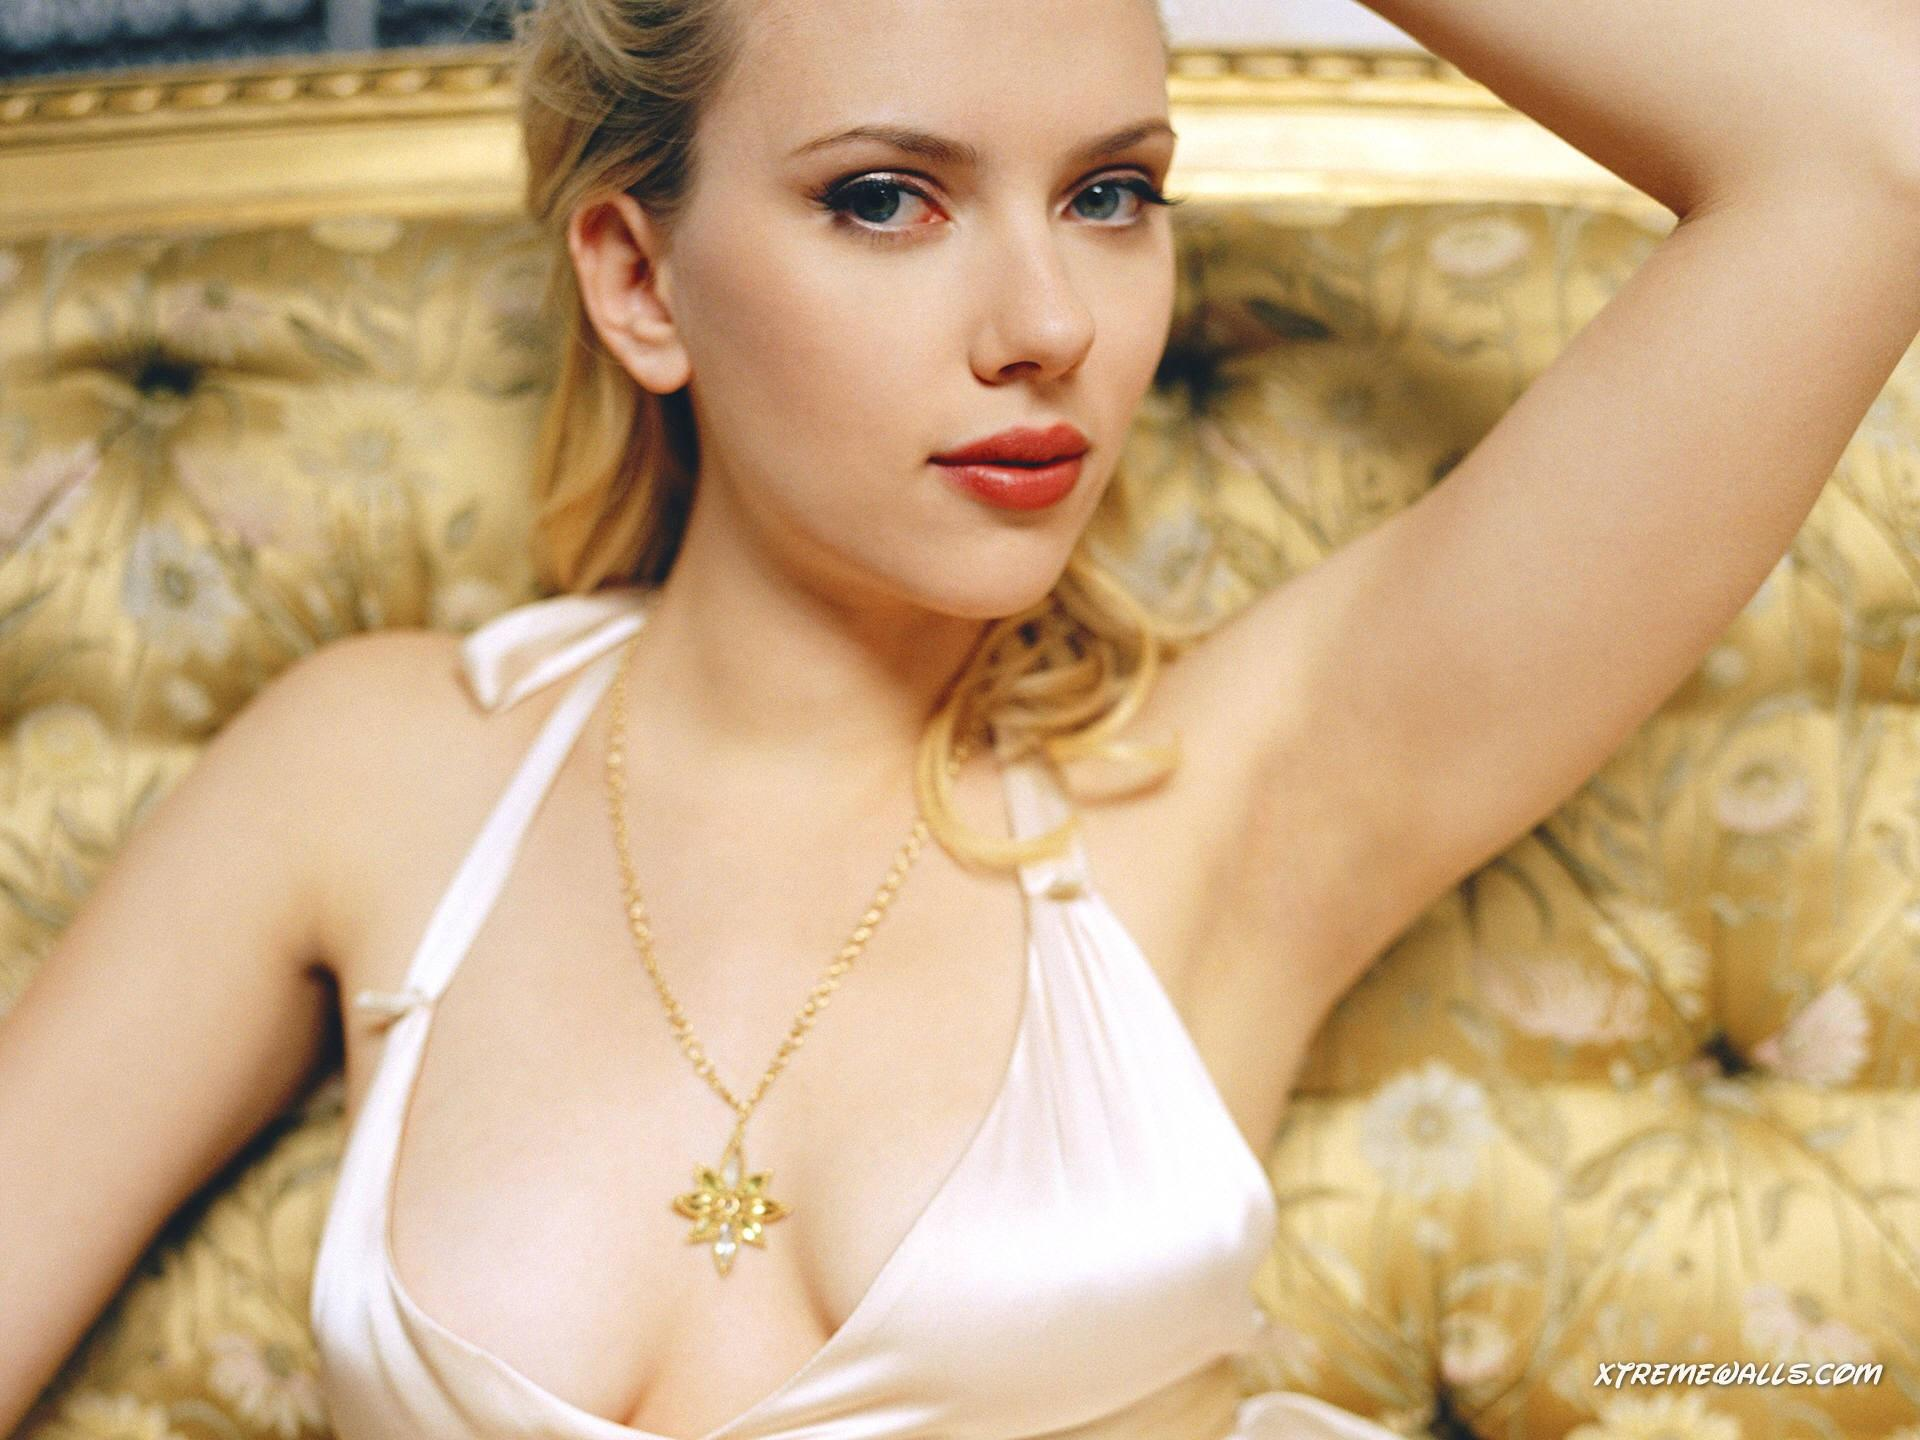 Hot Photos Fresh New Scarlett Johansson скарлетт йоханссон